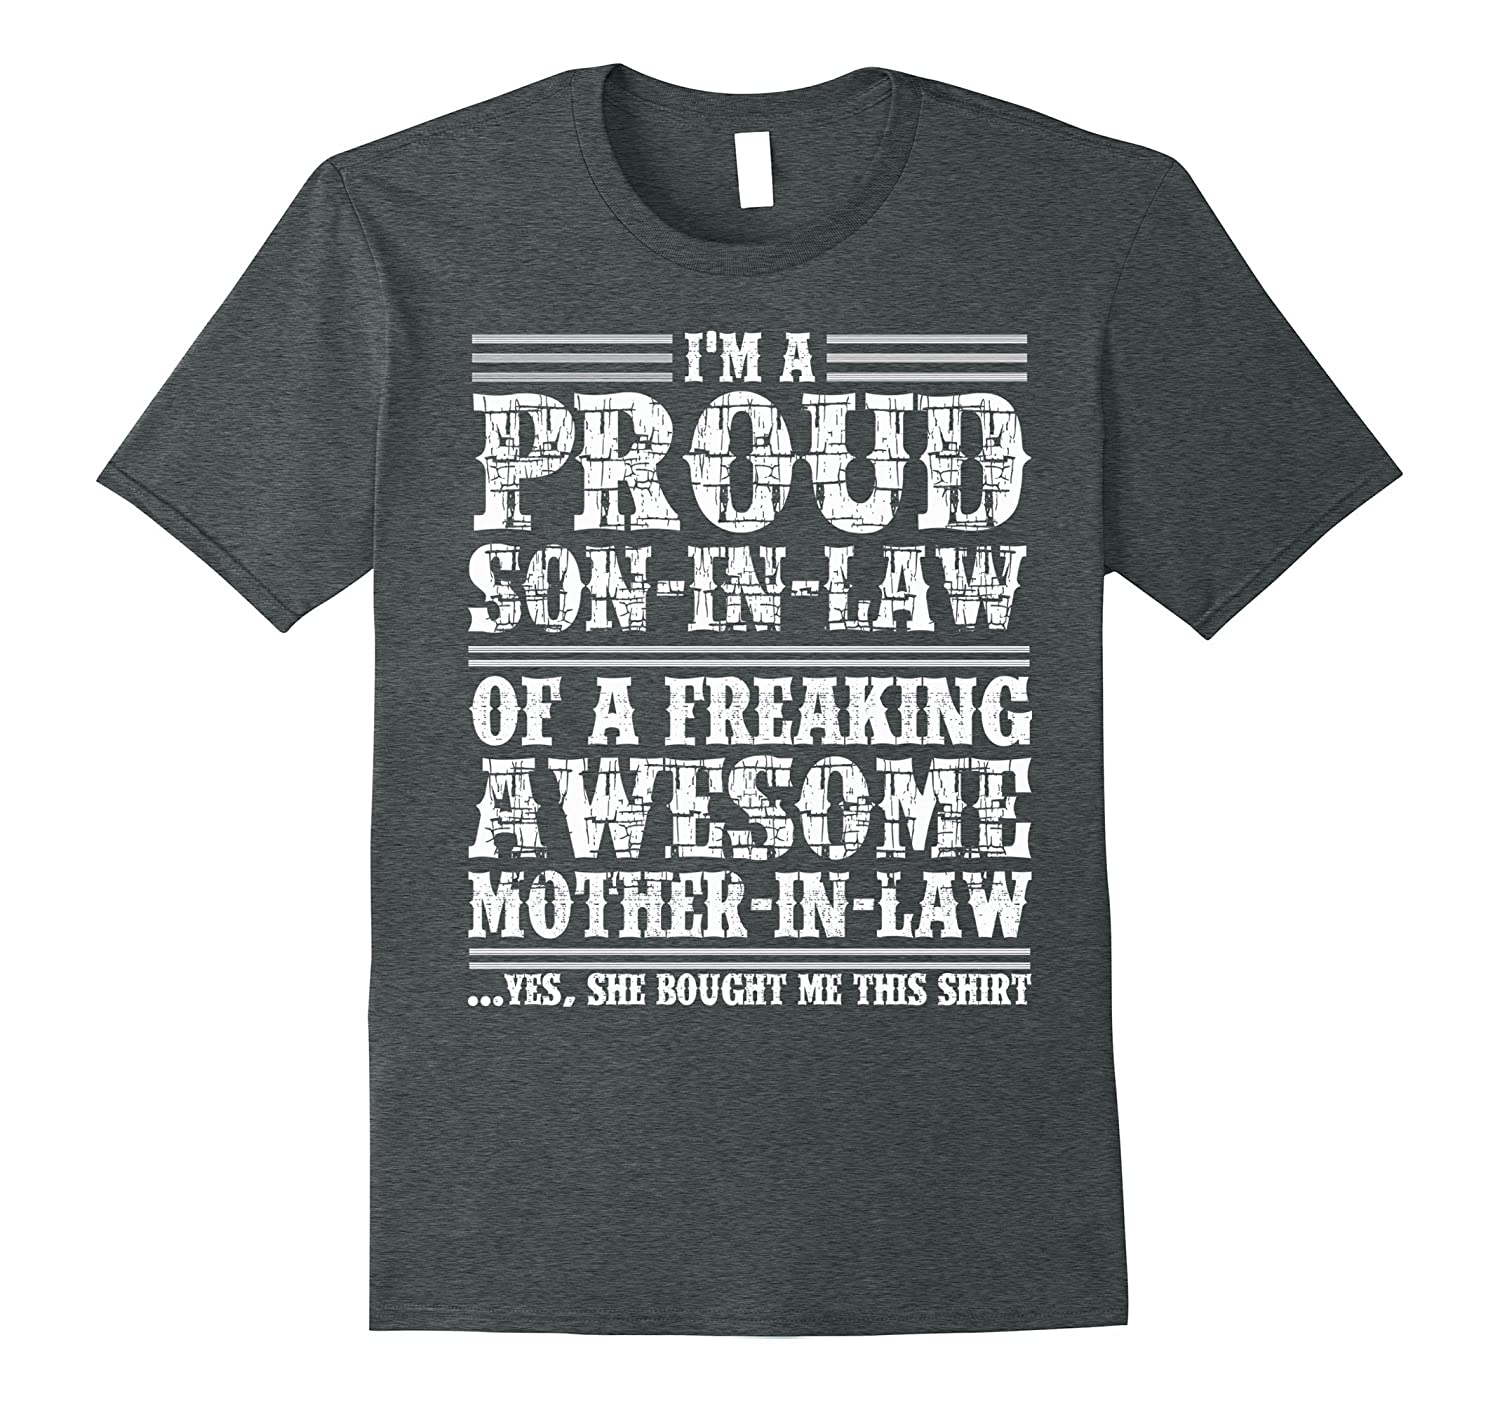 A Proud Son-in-law of A Freaking Awesome Mother-in-law Tee